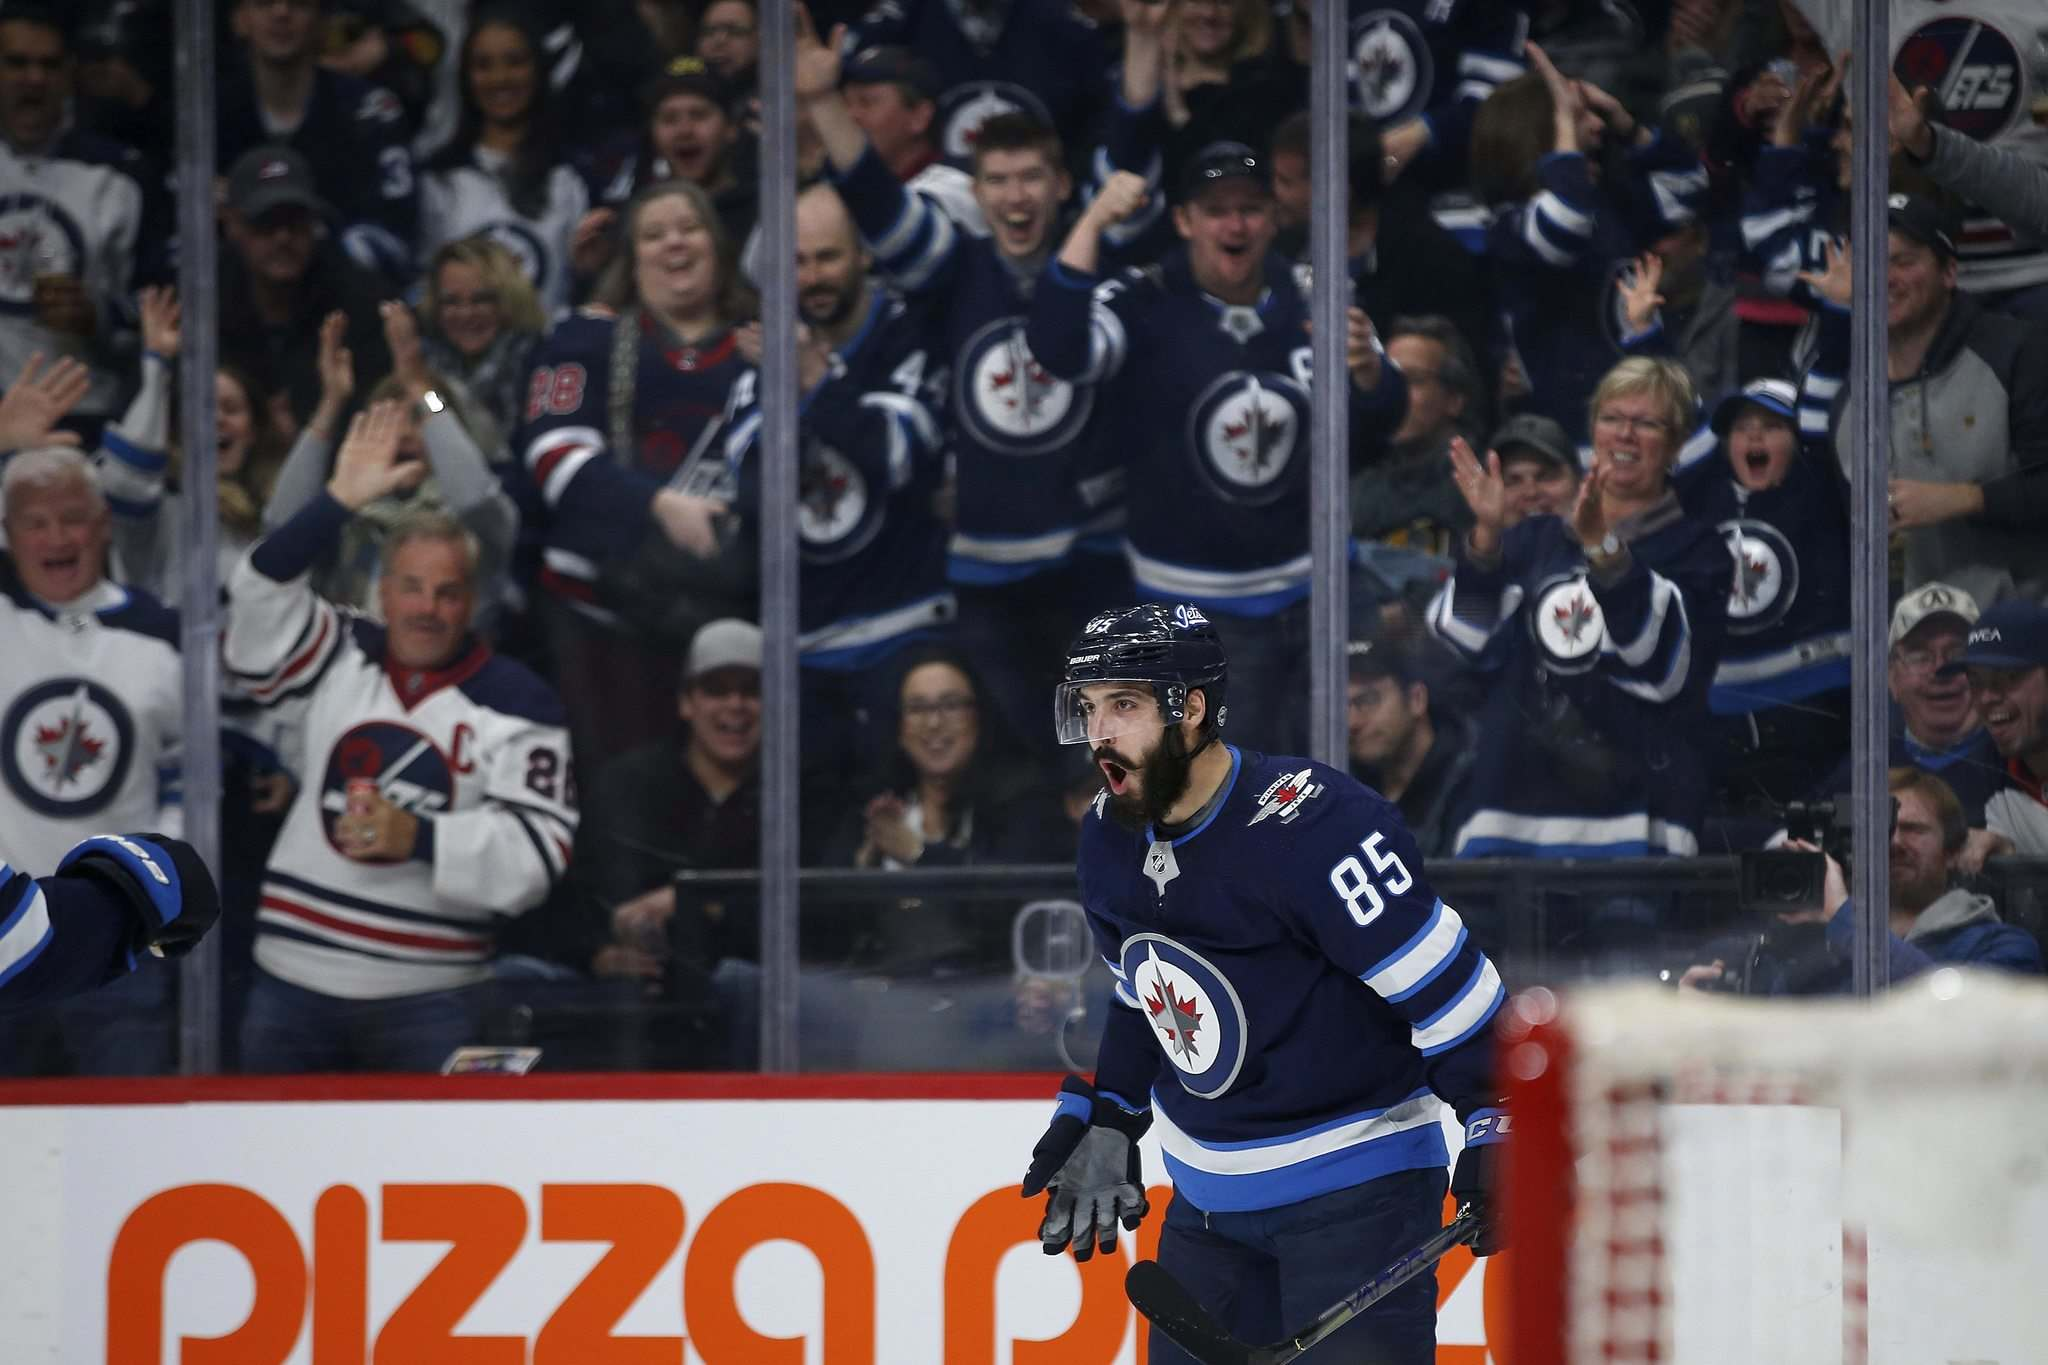 Popular forward Mathieu Perreault may very well have played his last game for the Winnipeg Jets. (John Woods / The Canadian Press files)